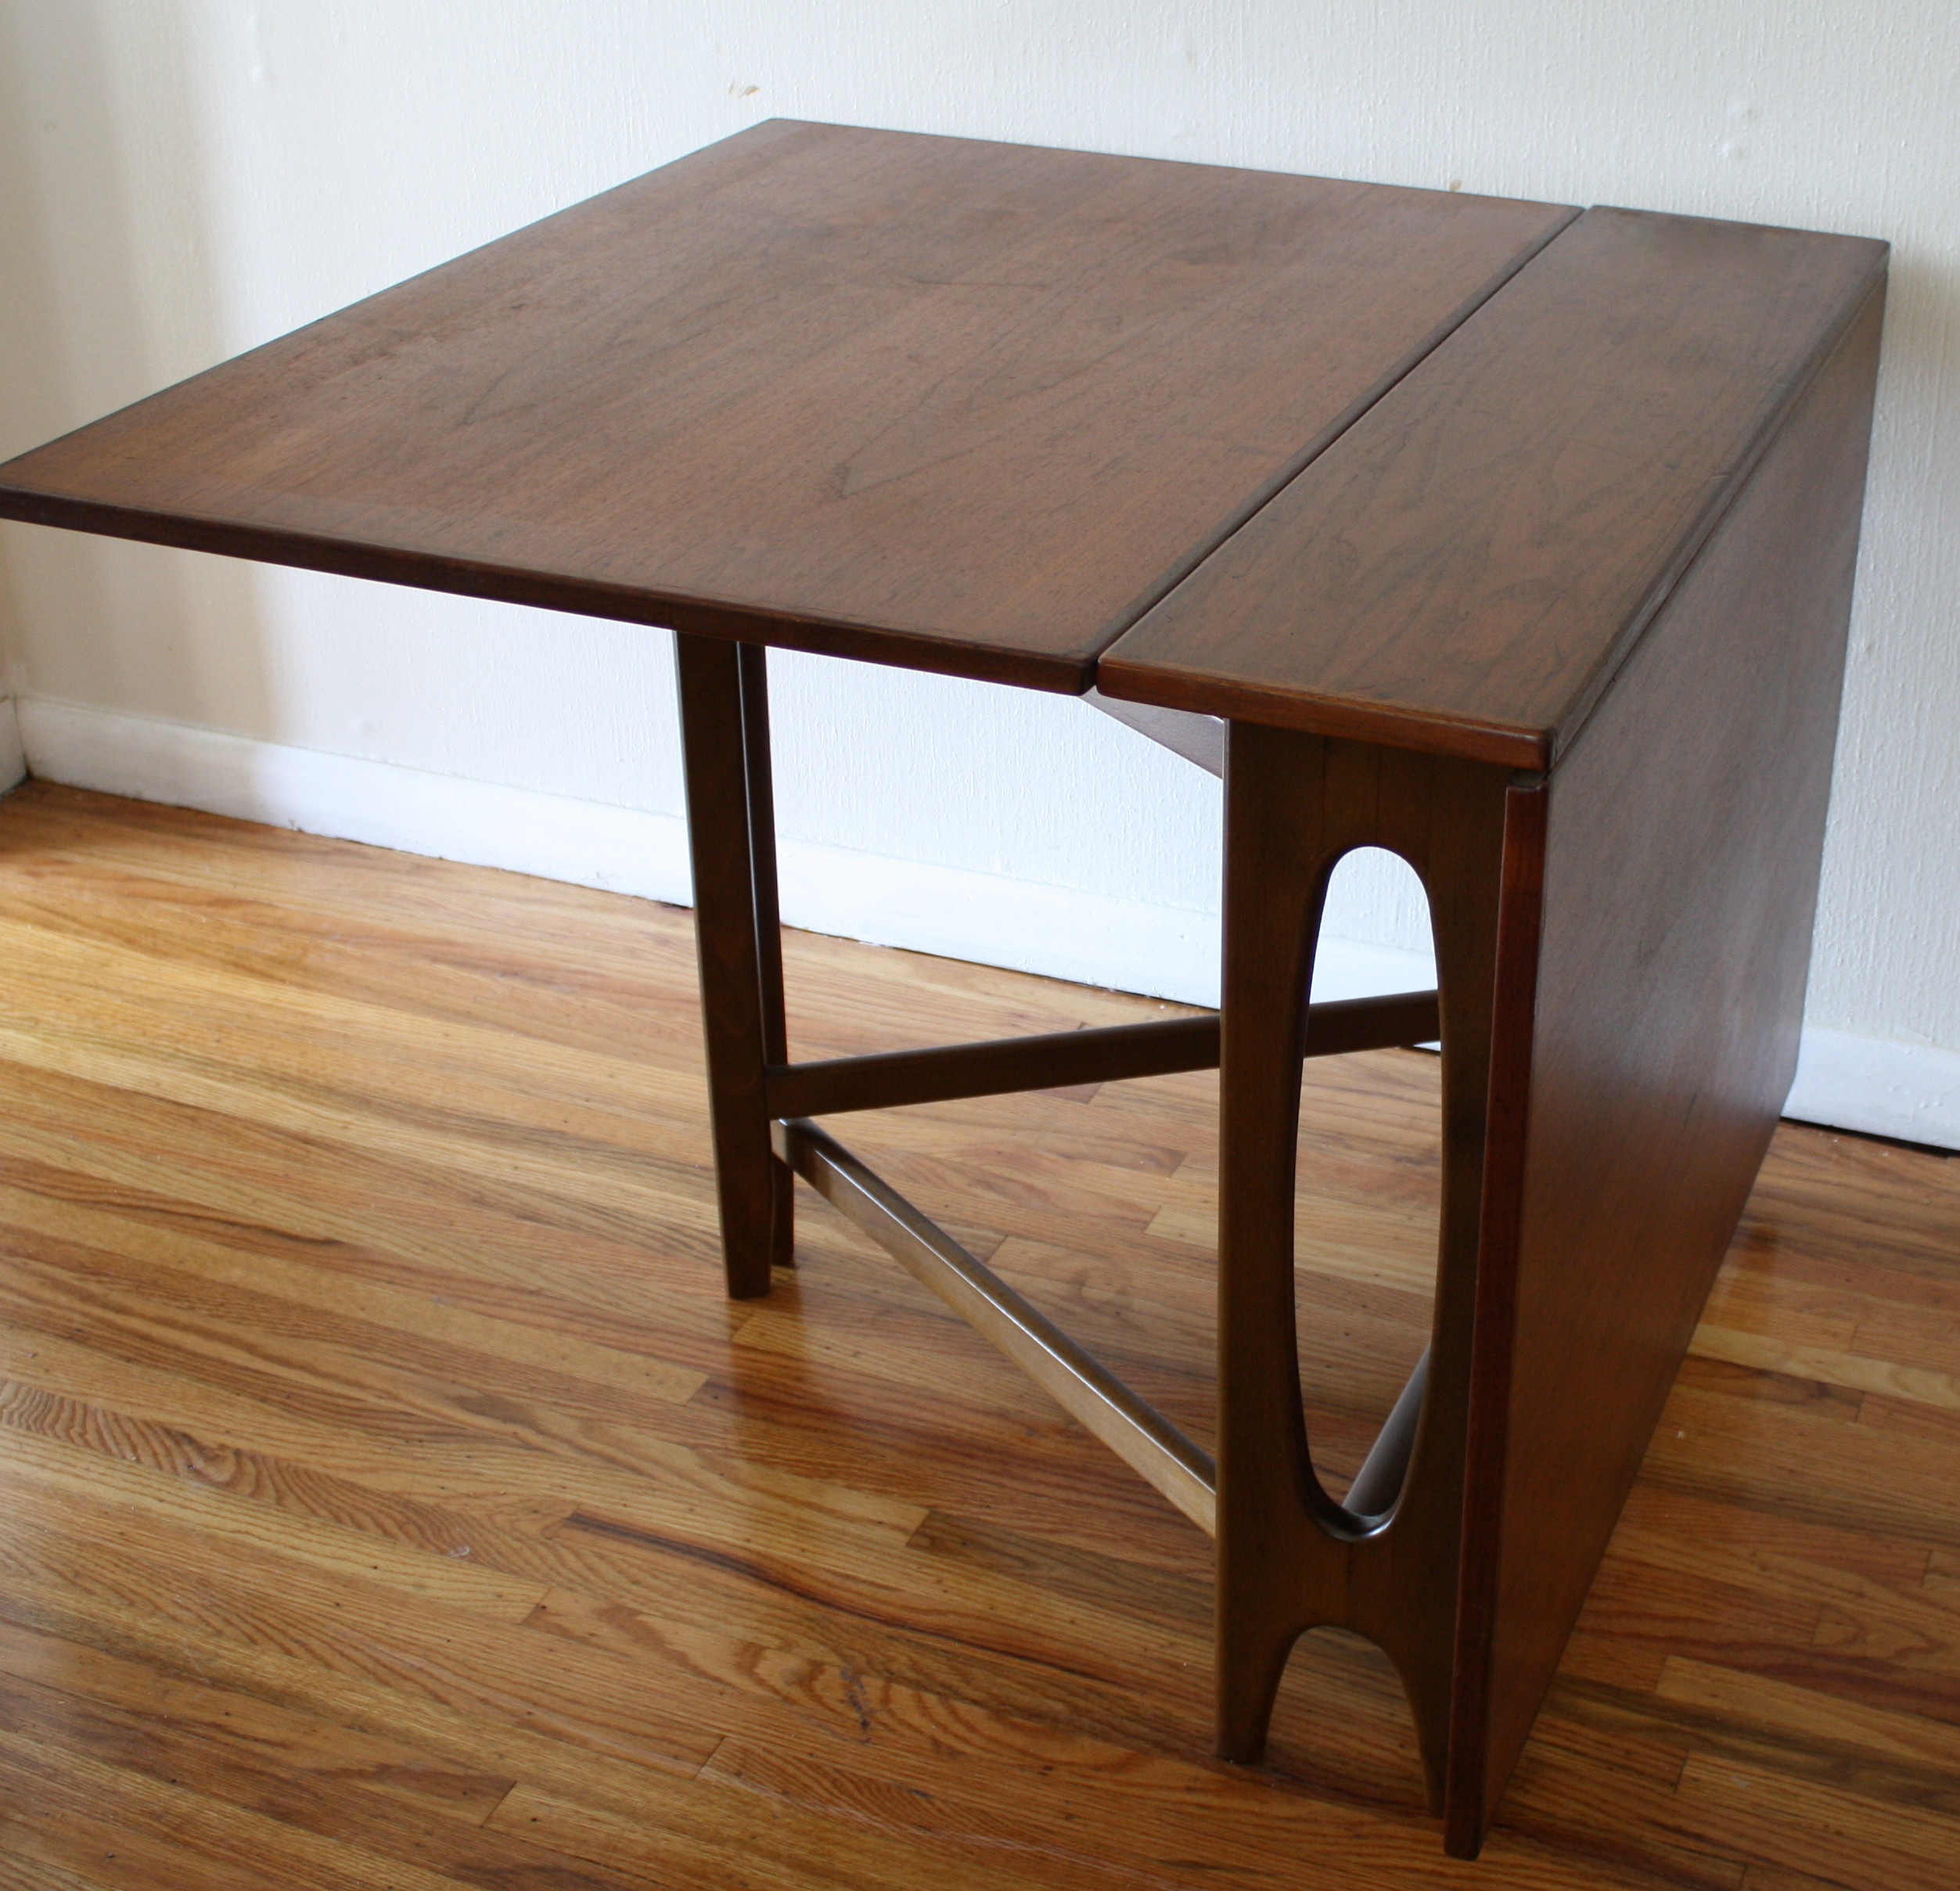 Best ideas about Foldable Dining Table . Save or Pin Dining Table Folding Dining Table Videos Now.